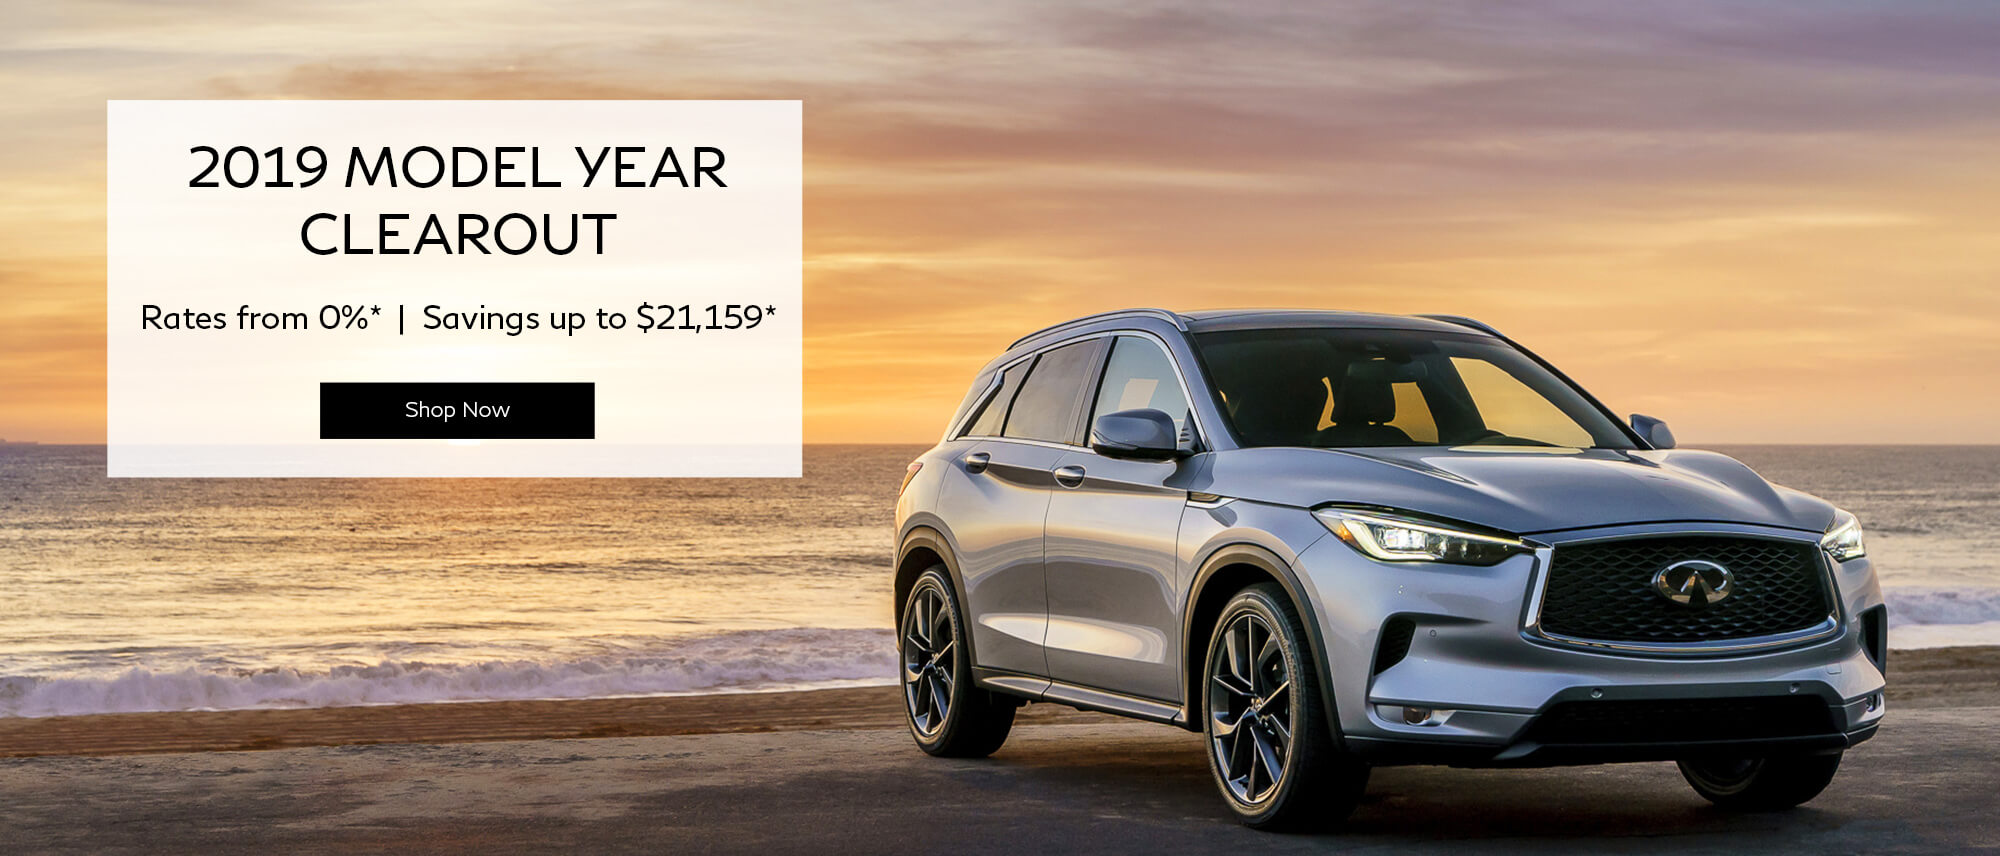 2019 MODEL YEAR CLEAROUT at Infiniti of Richmond